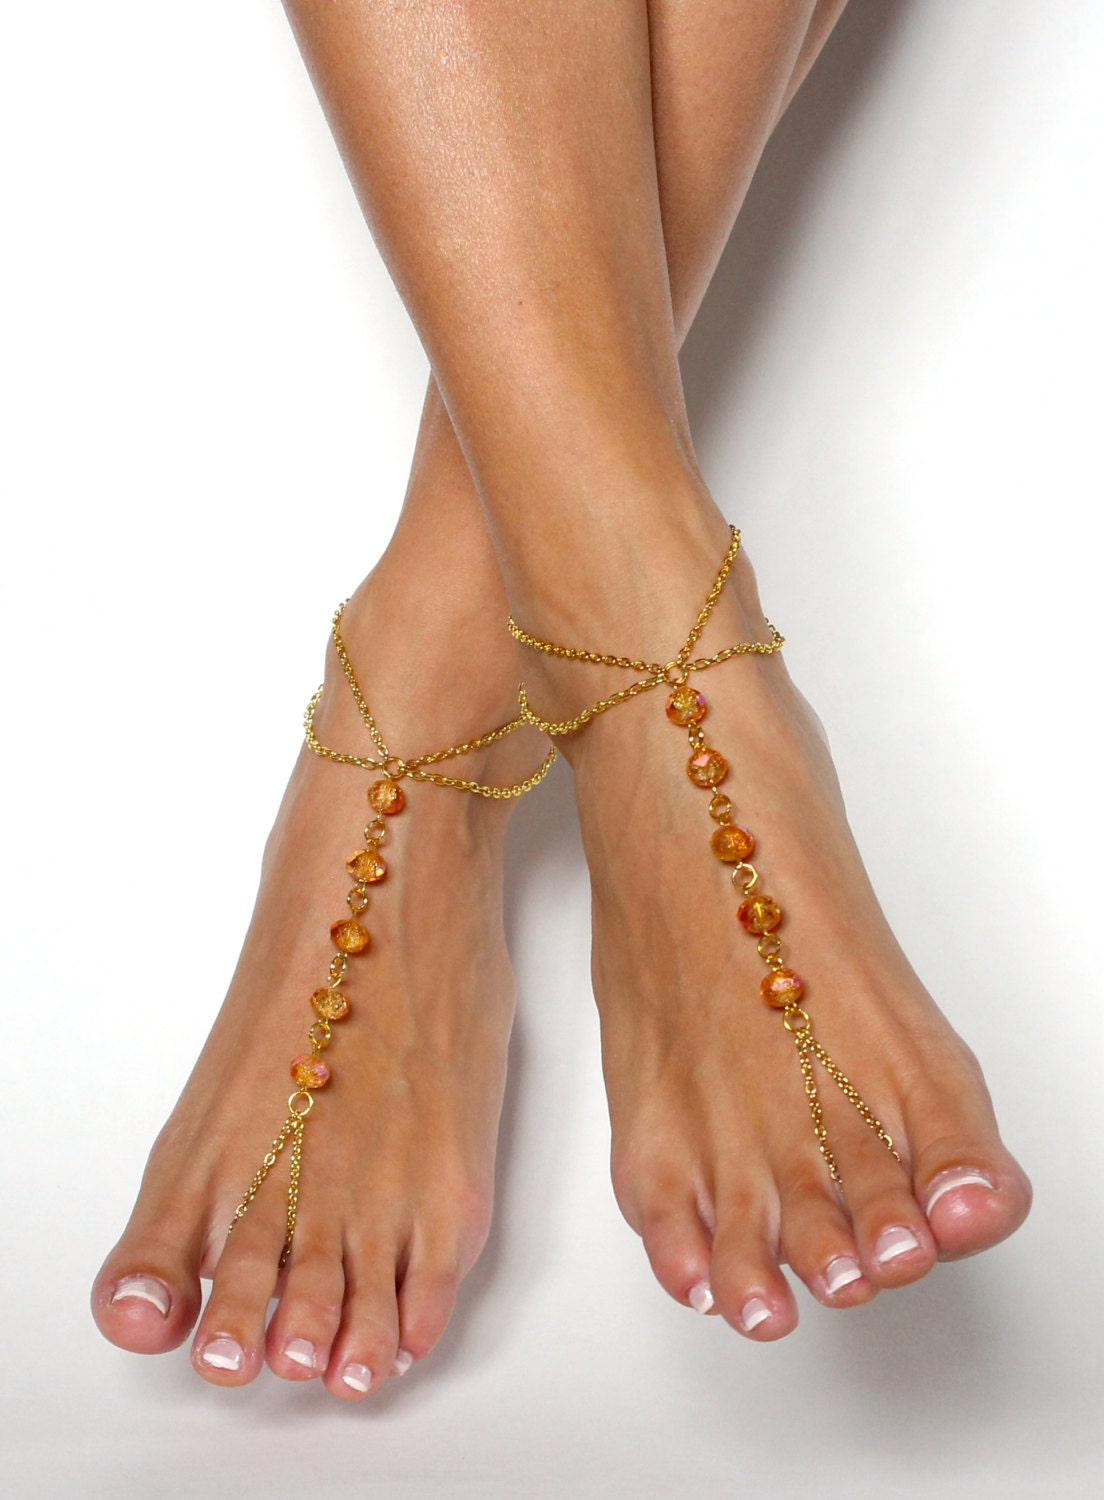 Aliexpress.com : Buy Hansel & Wang Barefoot Sandals Foot Jewelry Antique Anklet Fashion Coin Leg